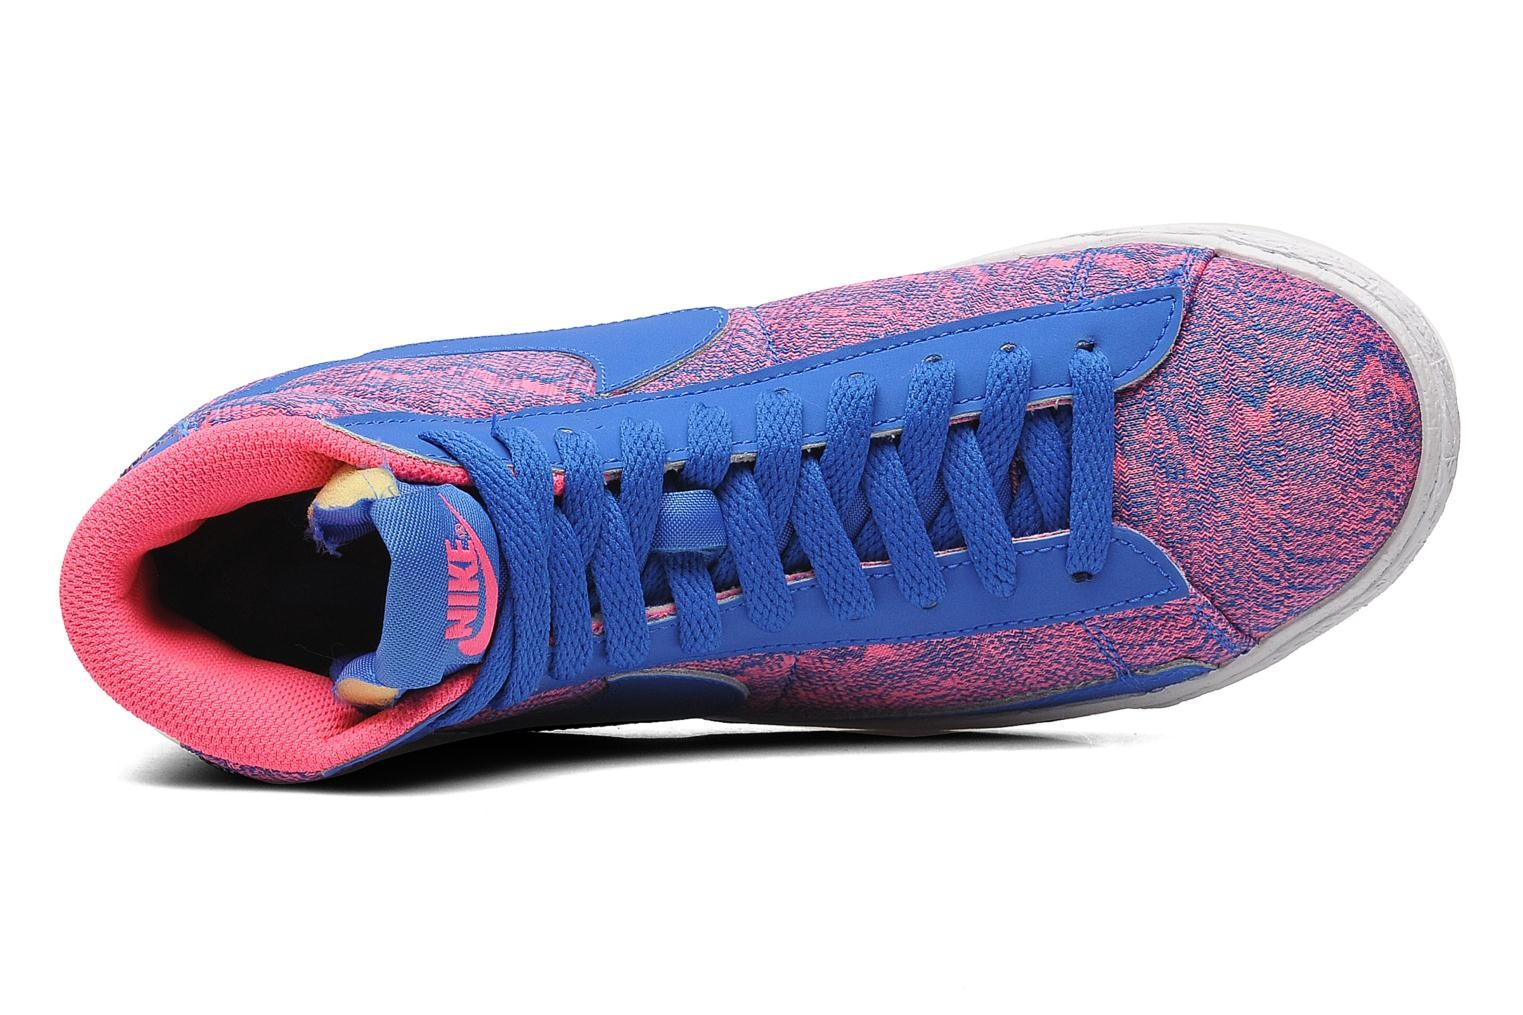 Nike Blazer Mid Vintage (GS) Hyper Pink Hyper Cobalt Deep Royal Blue White Youths Trainers